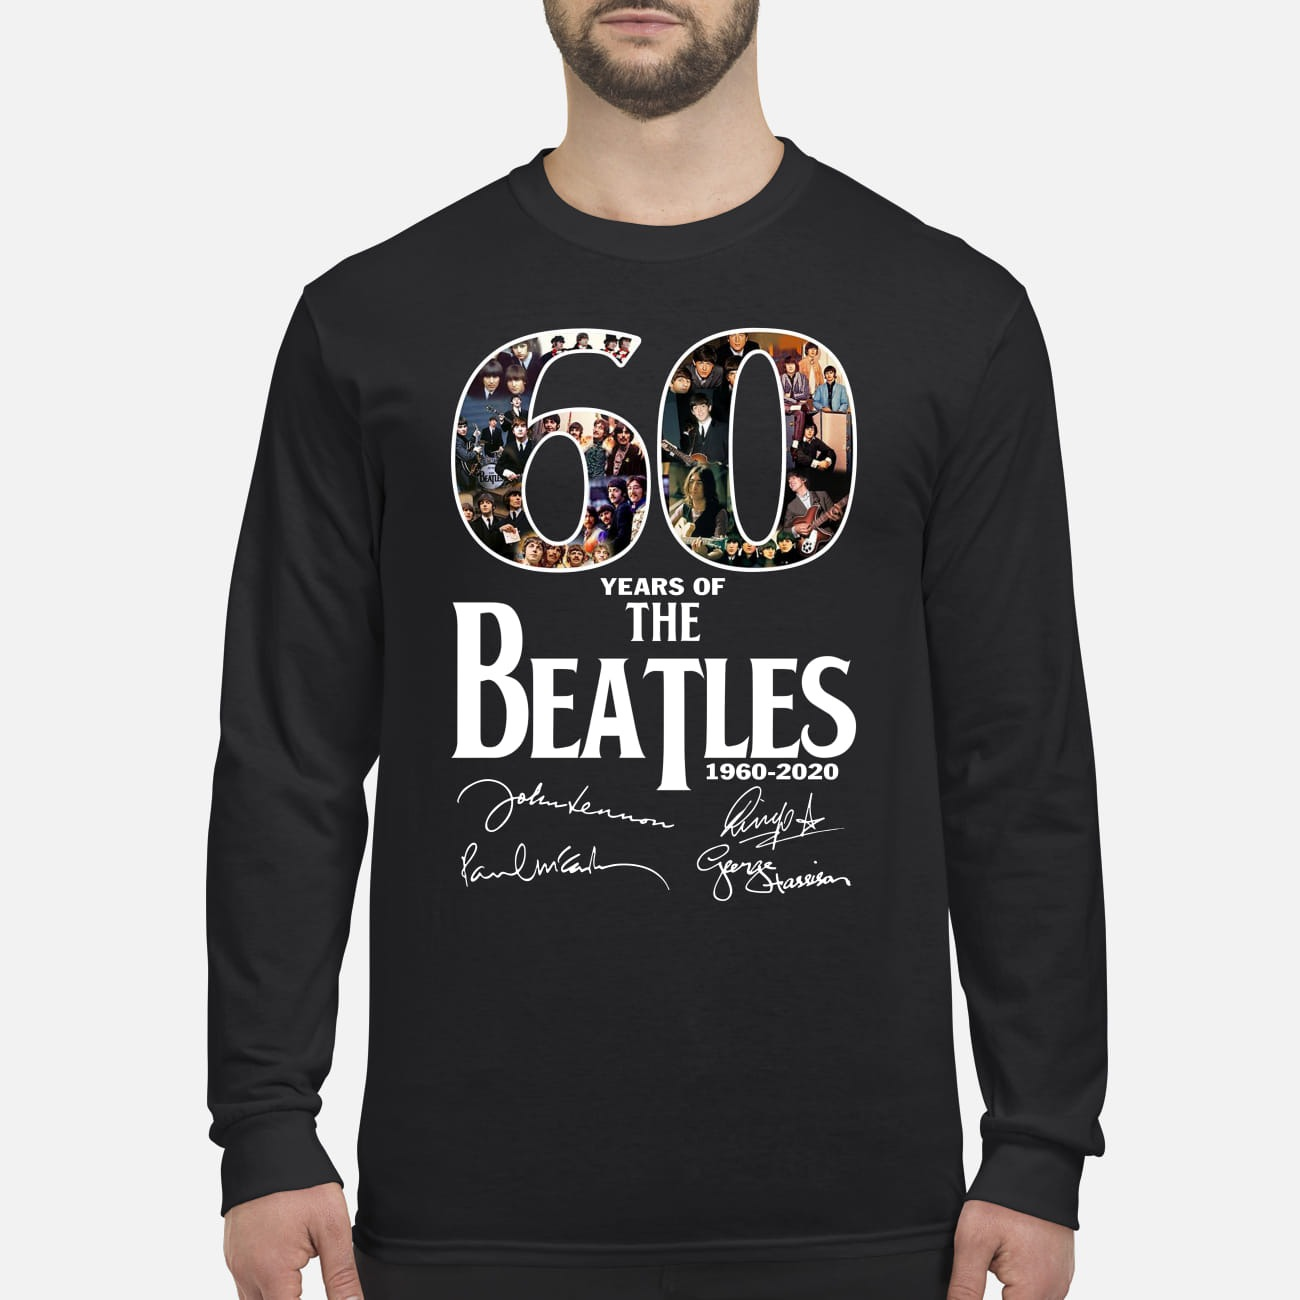 The Beatles 60 years men's long sleeved shirt